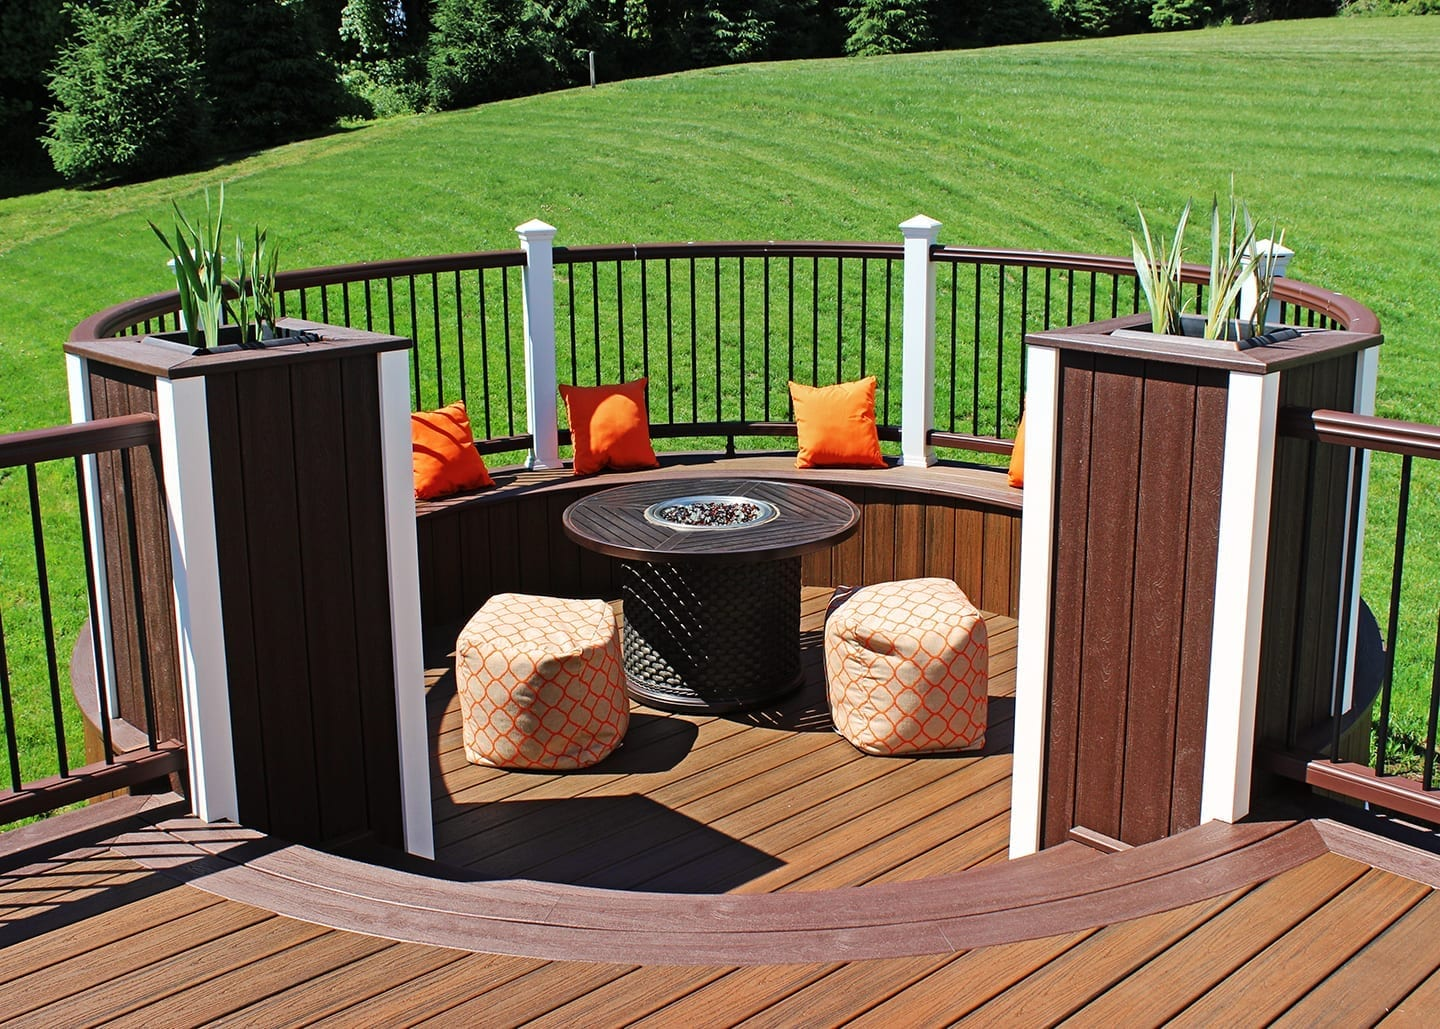 Outdoor Gas & Wood Burning Fireplace   Backyard Firepits on Outdoor Fireplace For Deck id=29508